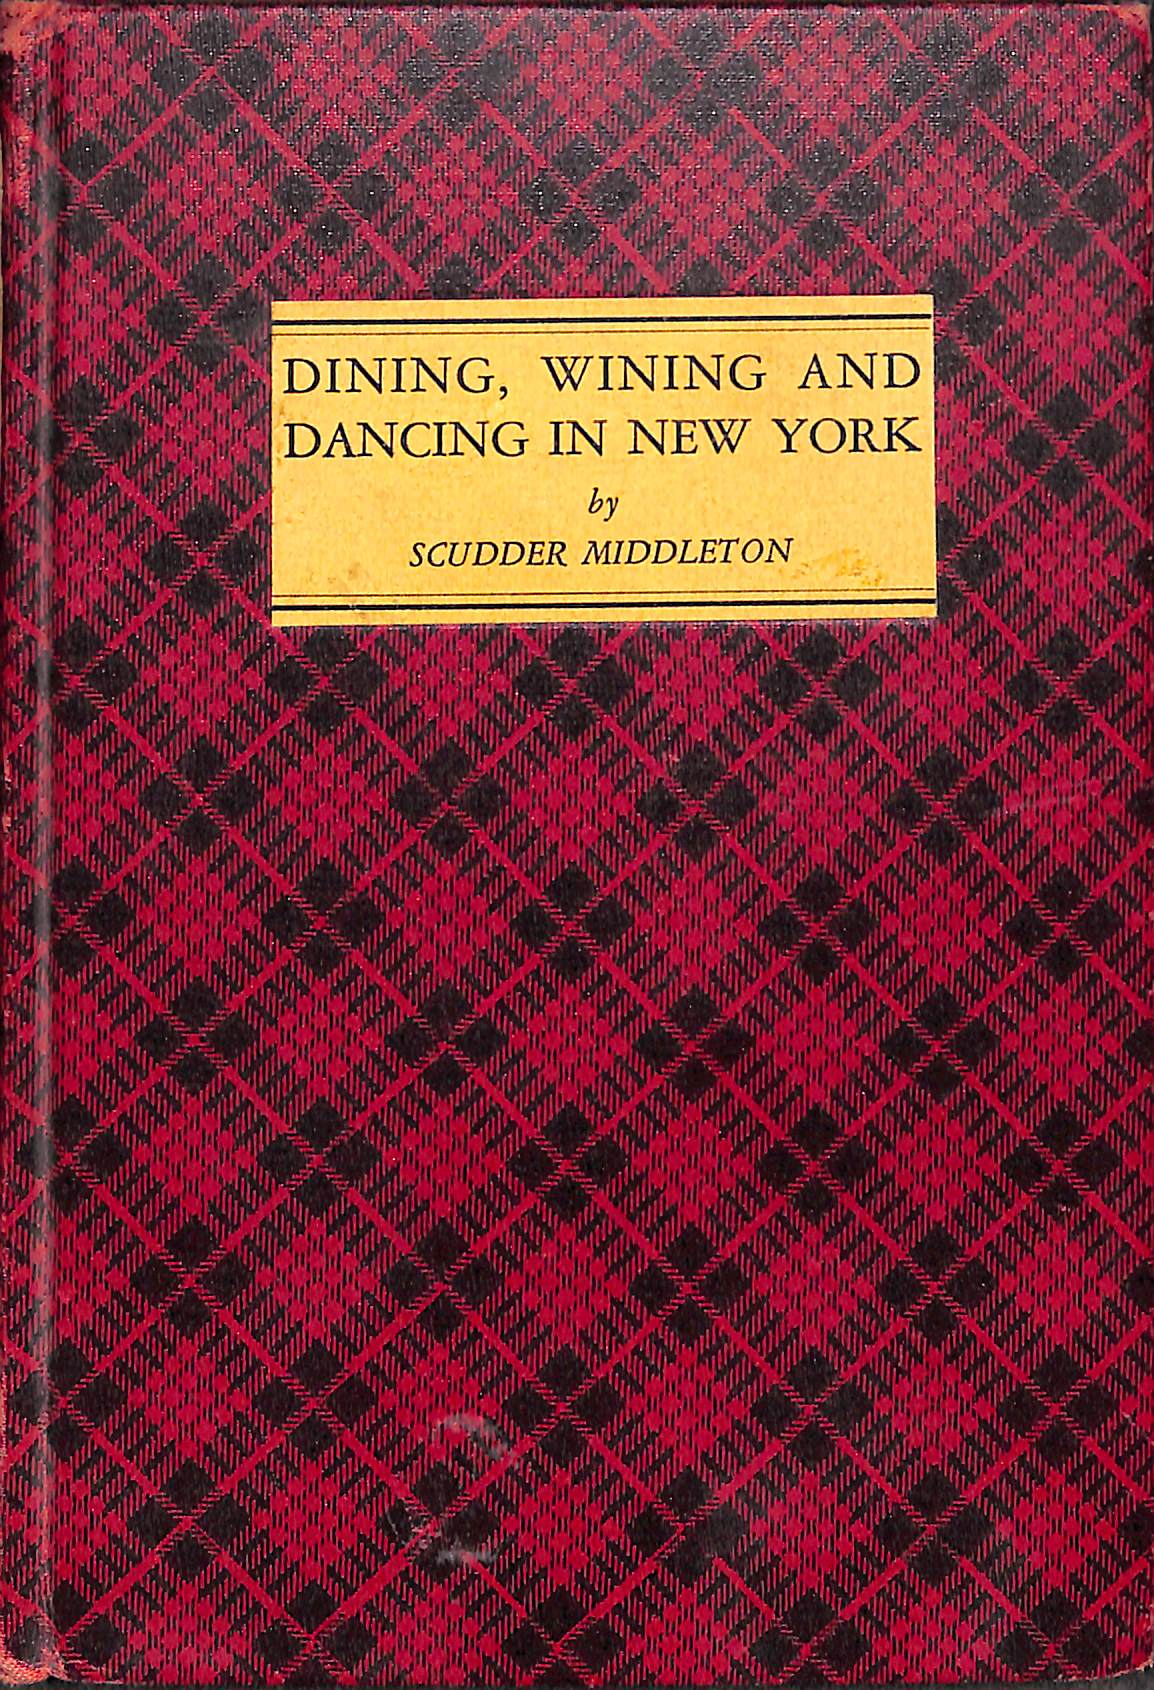 Dining, Wining and Dancing in New York